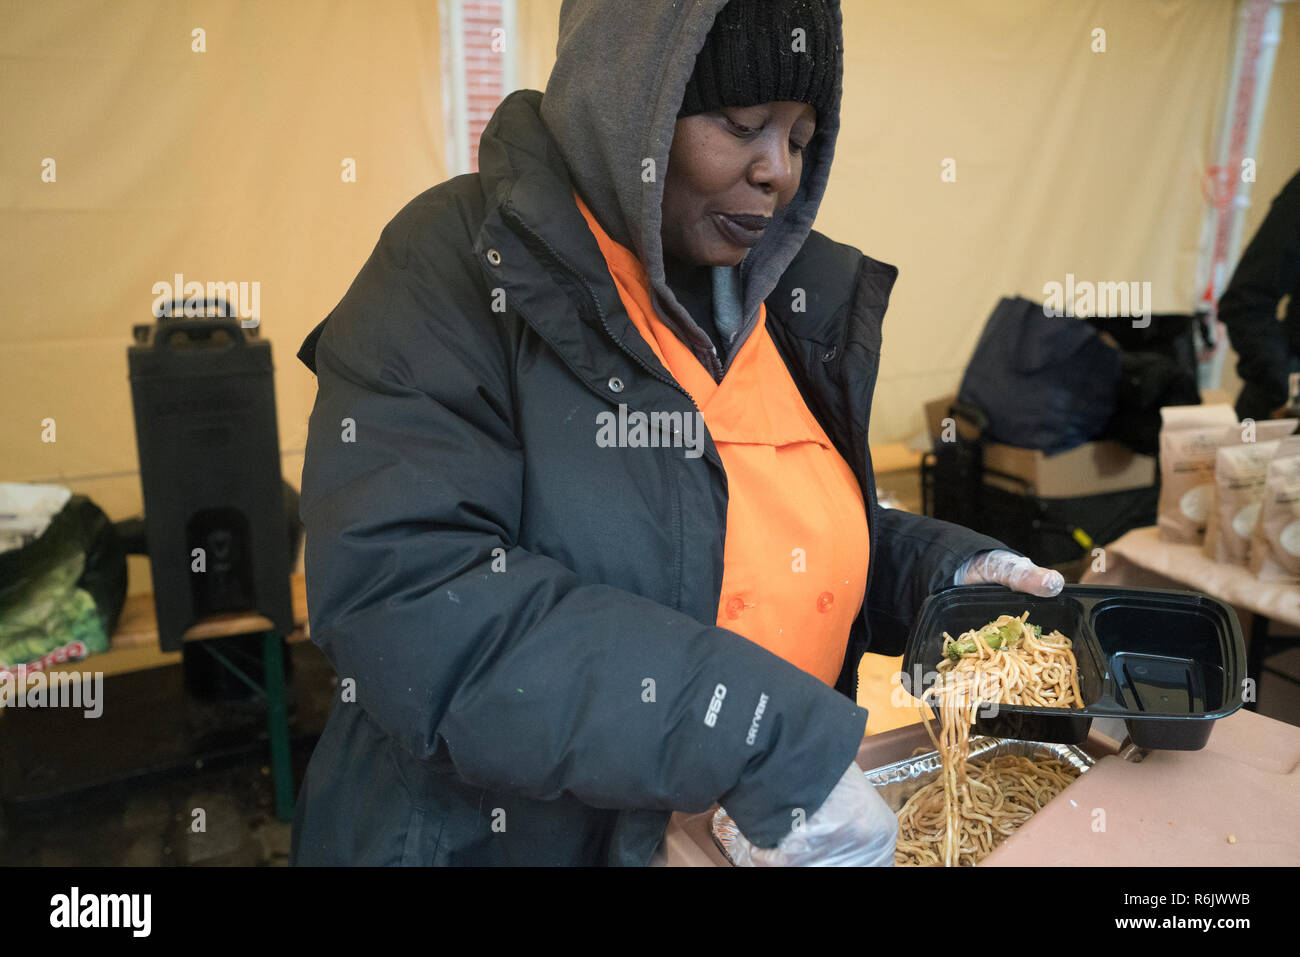 At a farmers' market in Manhattan's South Street Seaport, a woman sold sesame noodles and egg rolls that she had made. - Stock Image